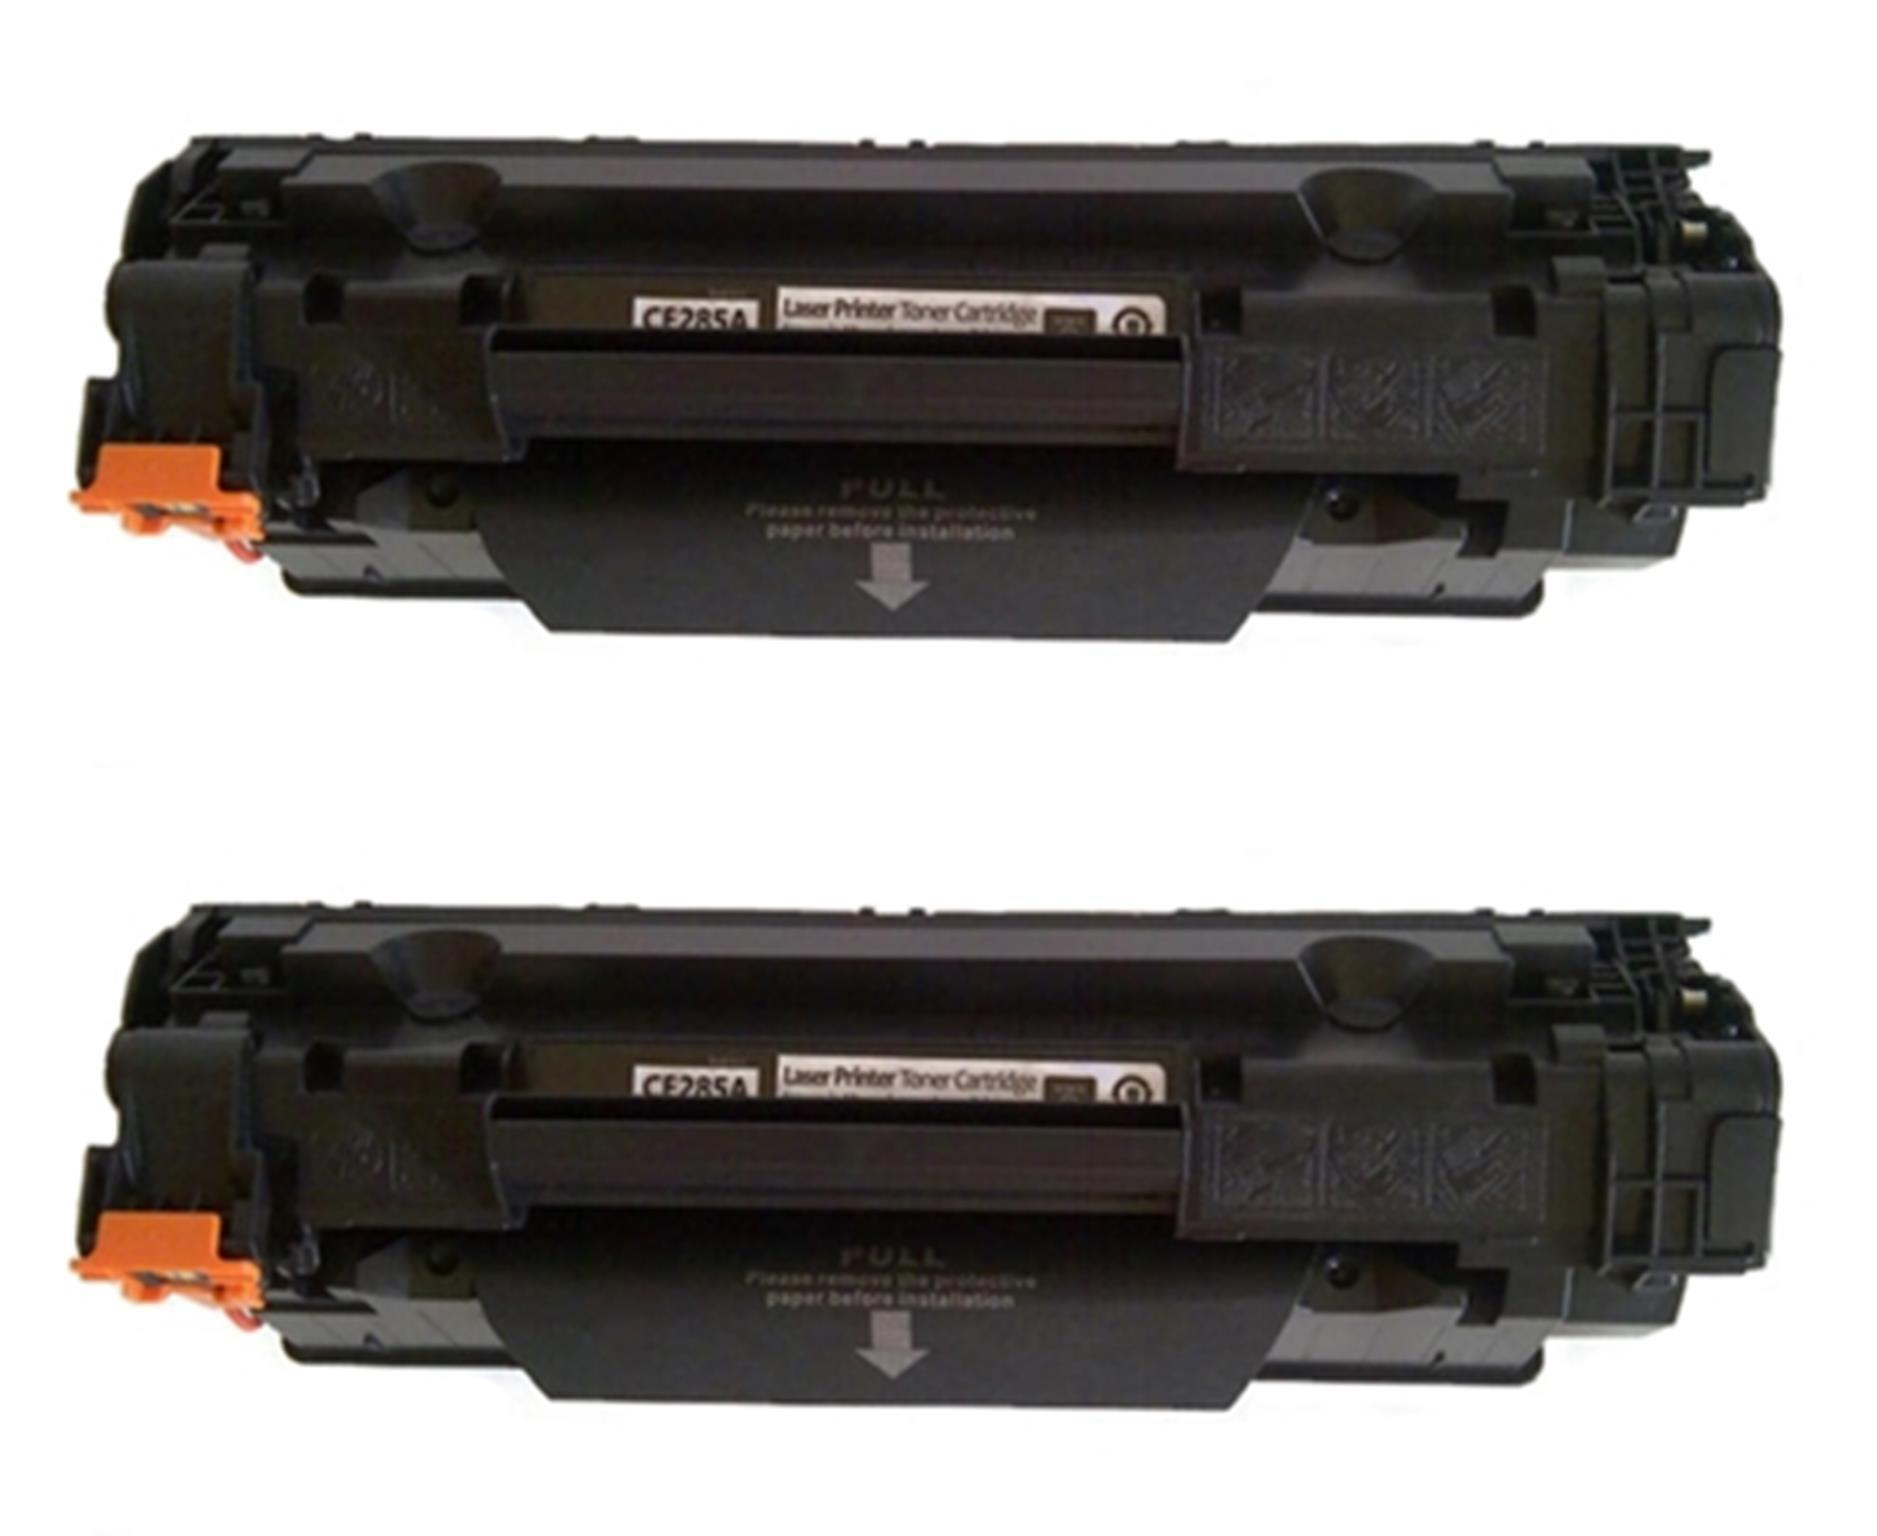 Vicasia Hp Laserjet Toner Cartridge Ce285a Hitam Daftar Harga Wiper Blade Wb 85a For Use In P1102 P1102w M1132 M1212 M1214 M1217 Compatible 2 Unit